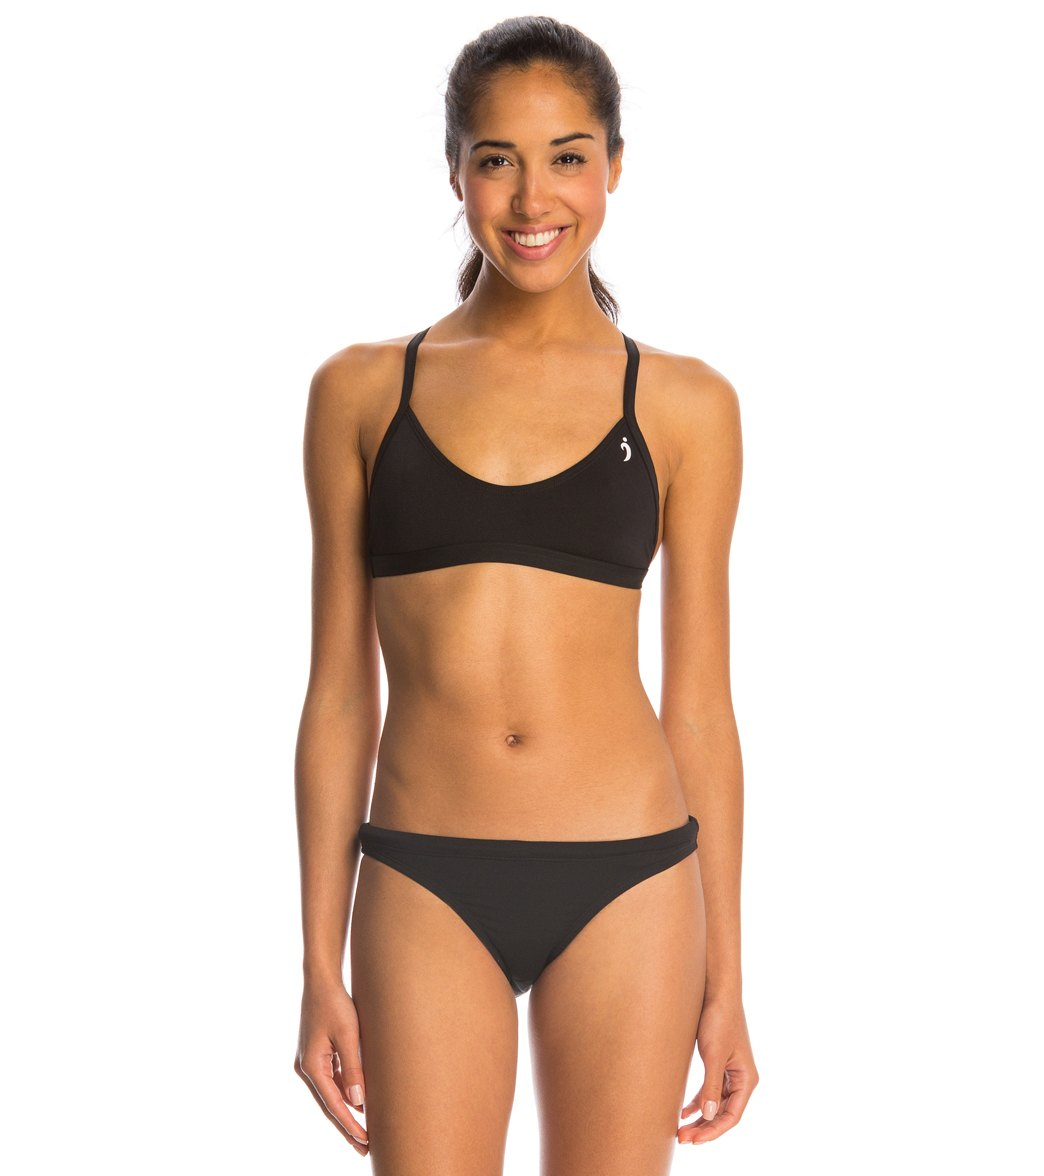 Illusions Black Two Piece Swimsuit Set At Swimoutlet Com Free Shipping